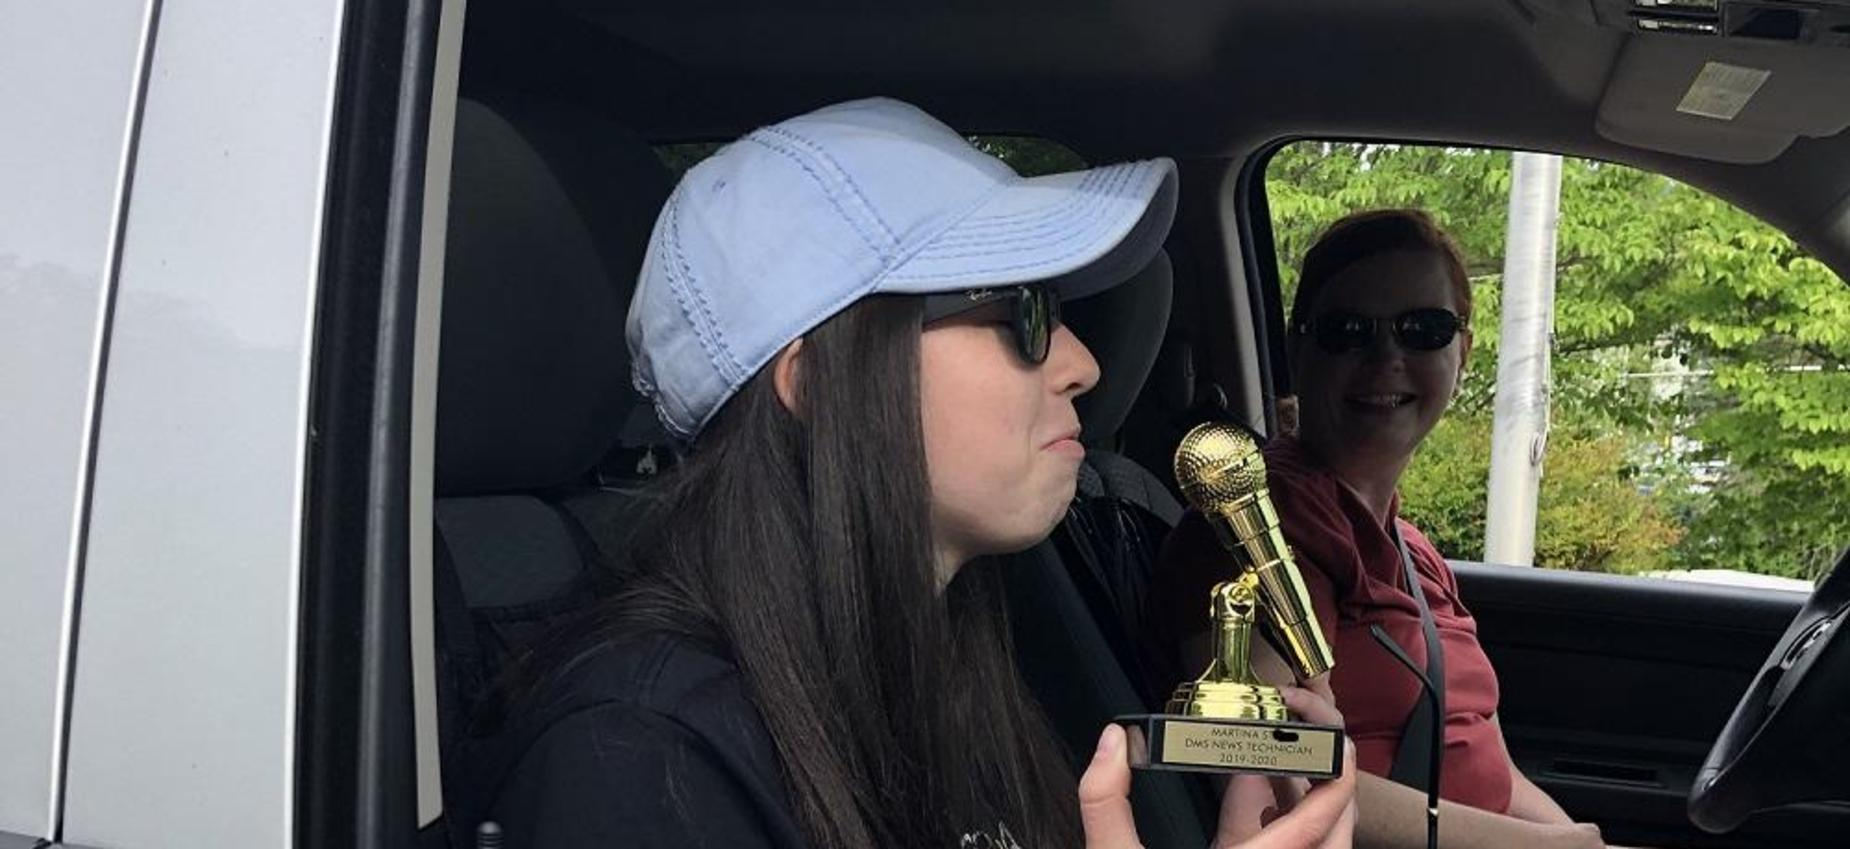 A student holds a trophy in a car.